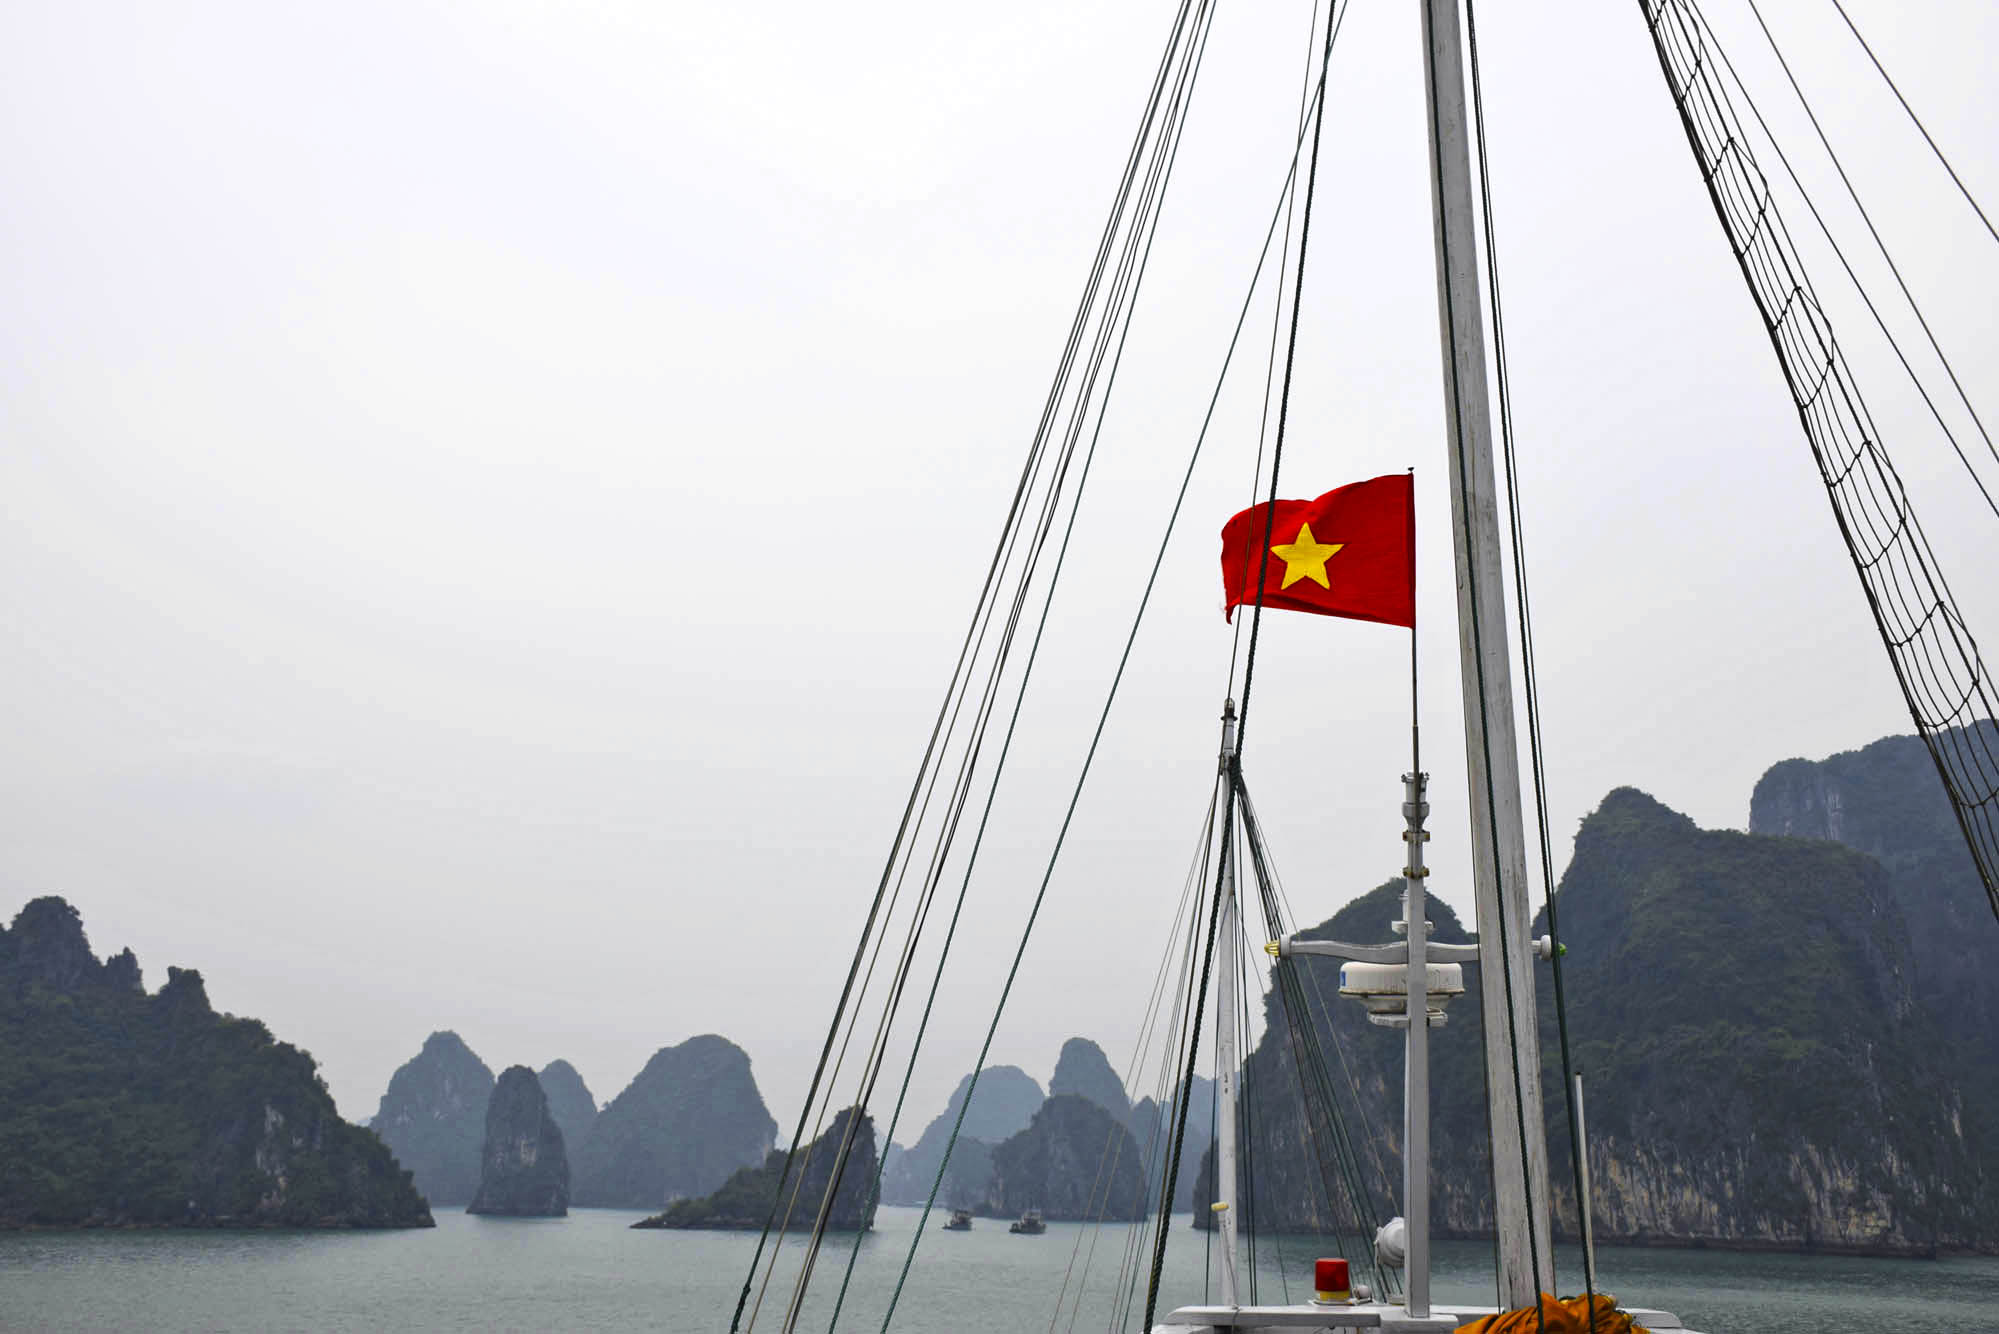 halong-bay-vietna-dicas-barco-paradise-luxury-cruise-2